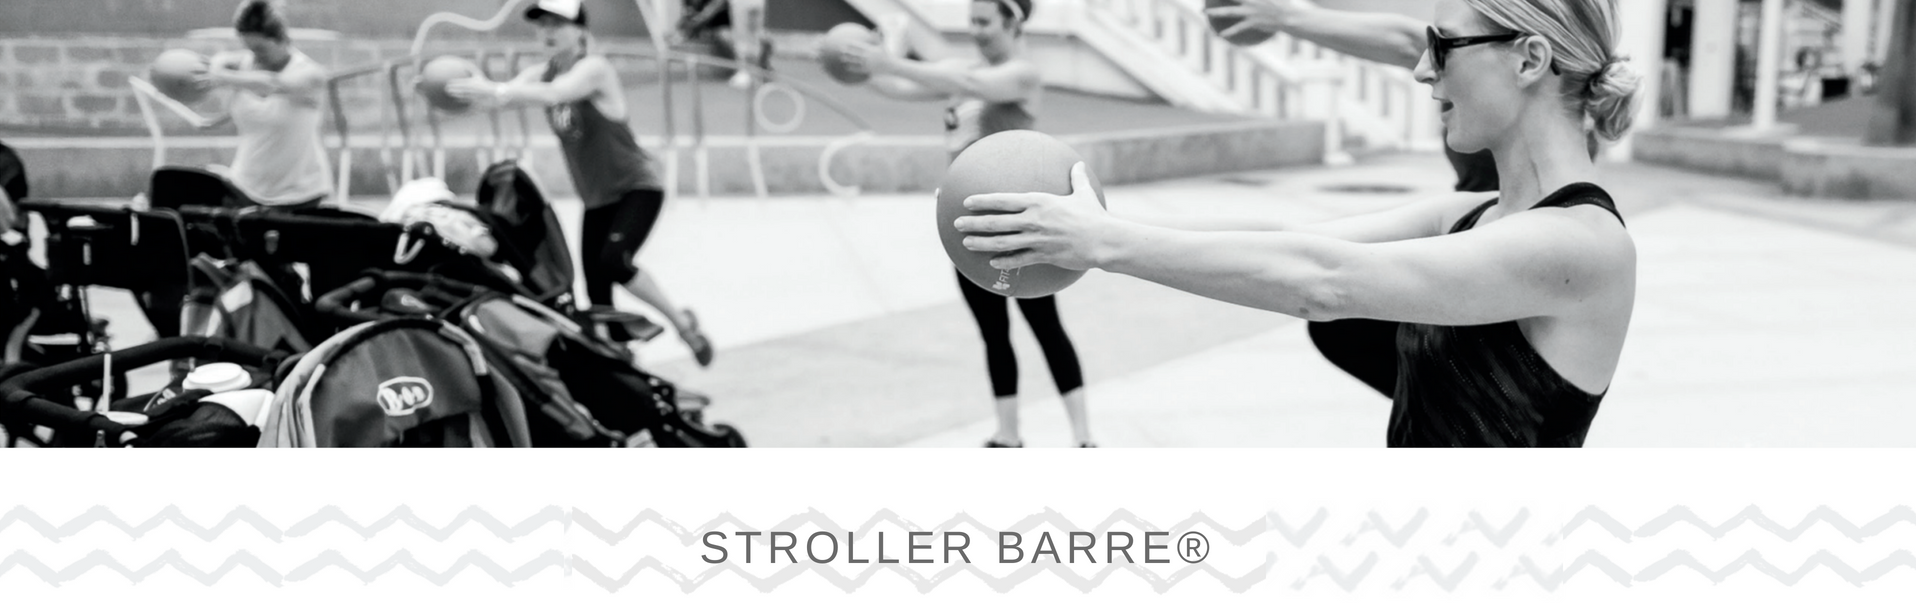 NEW STROLLER BARRE HEADER.png